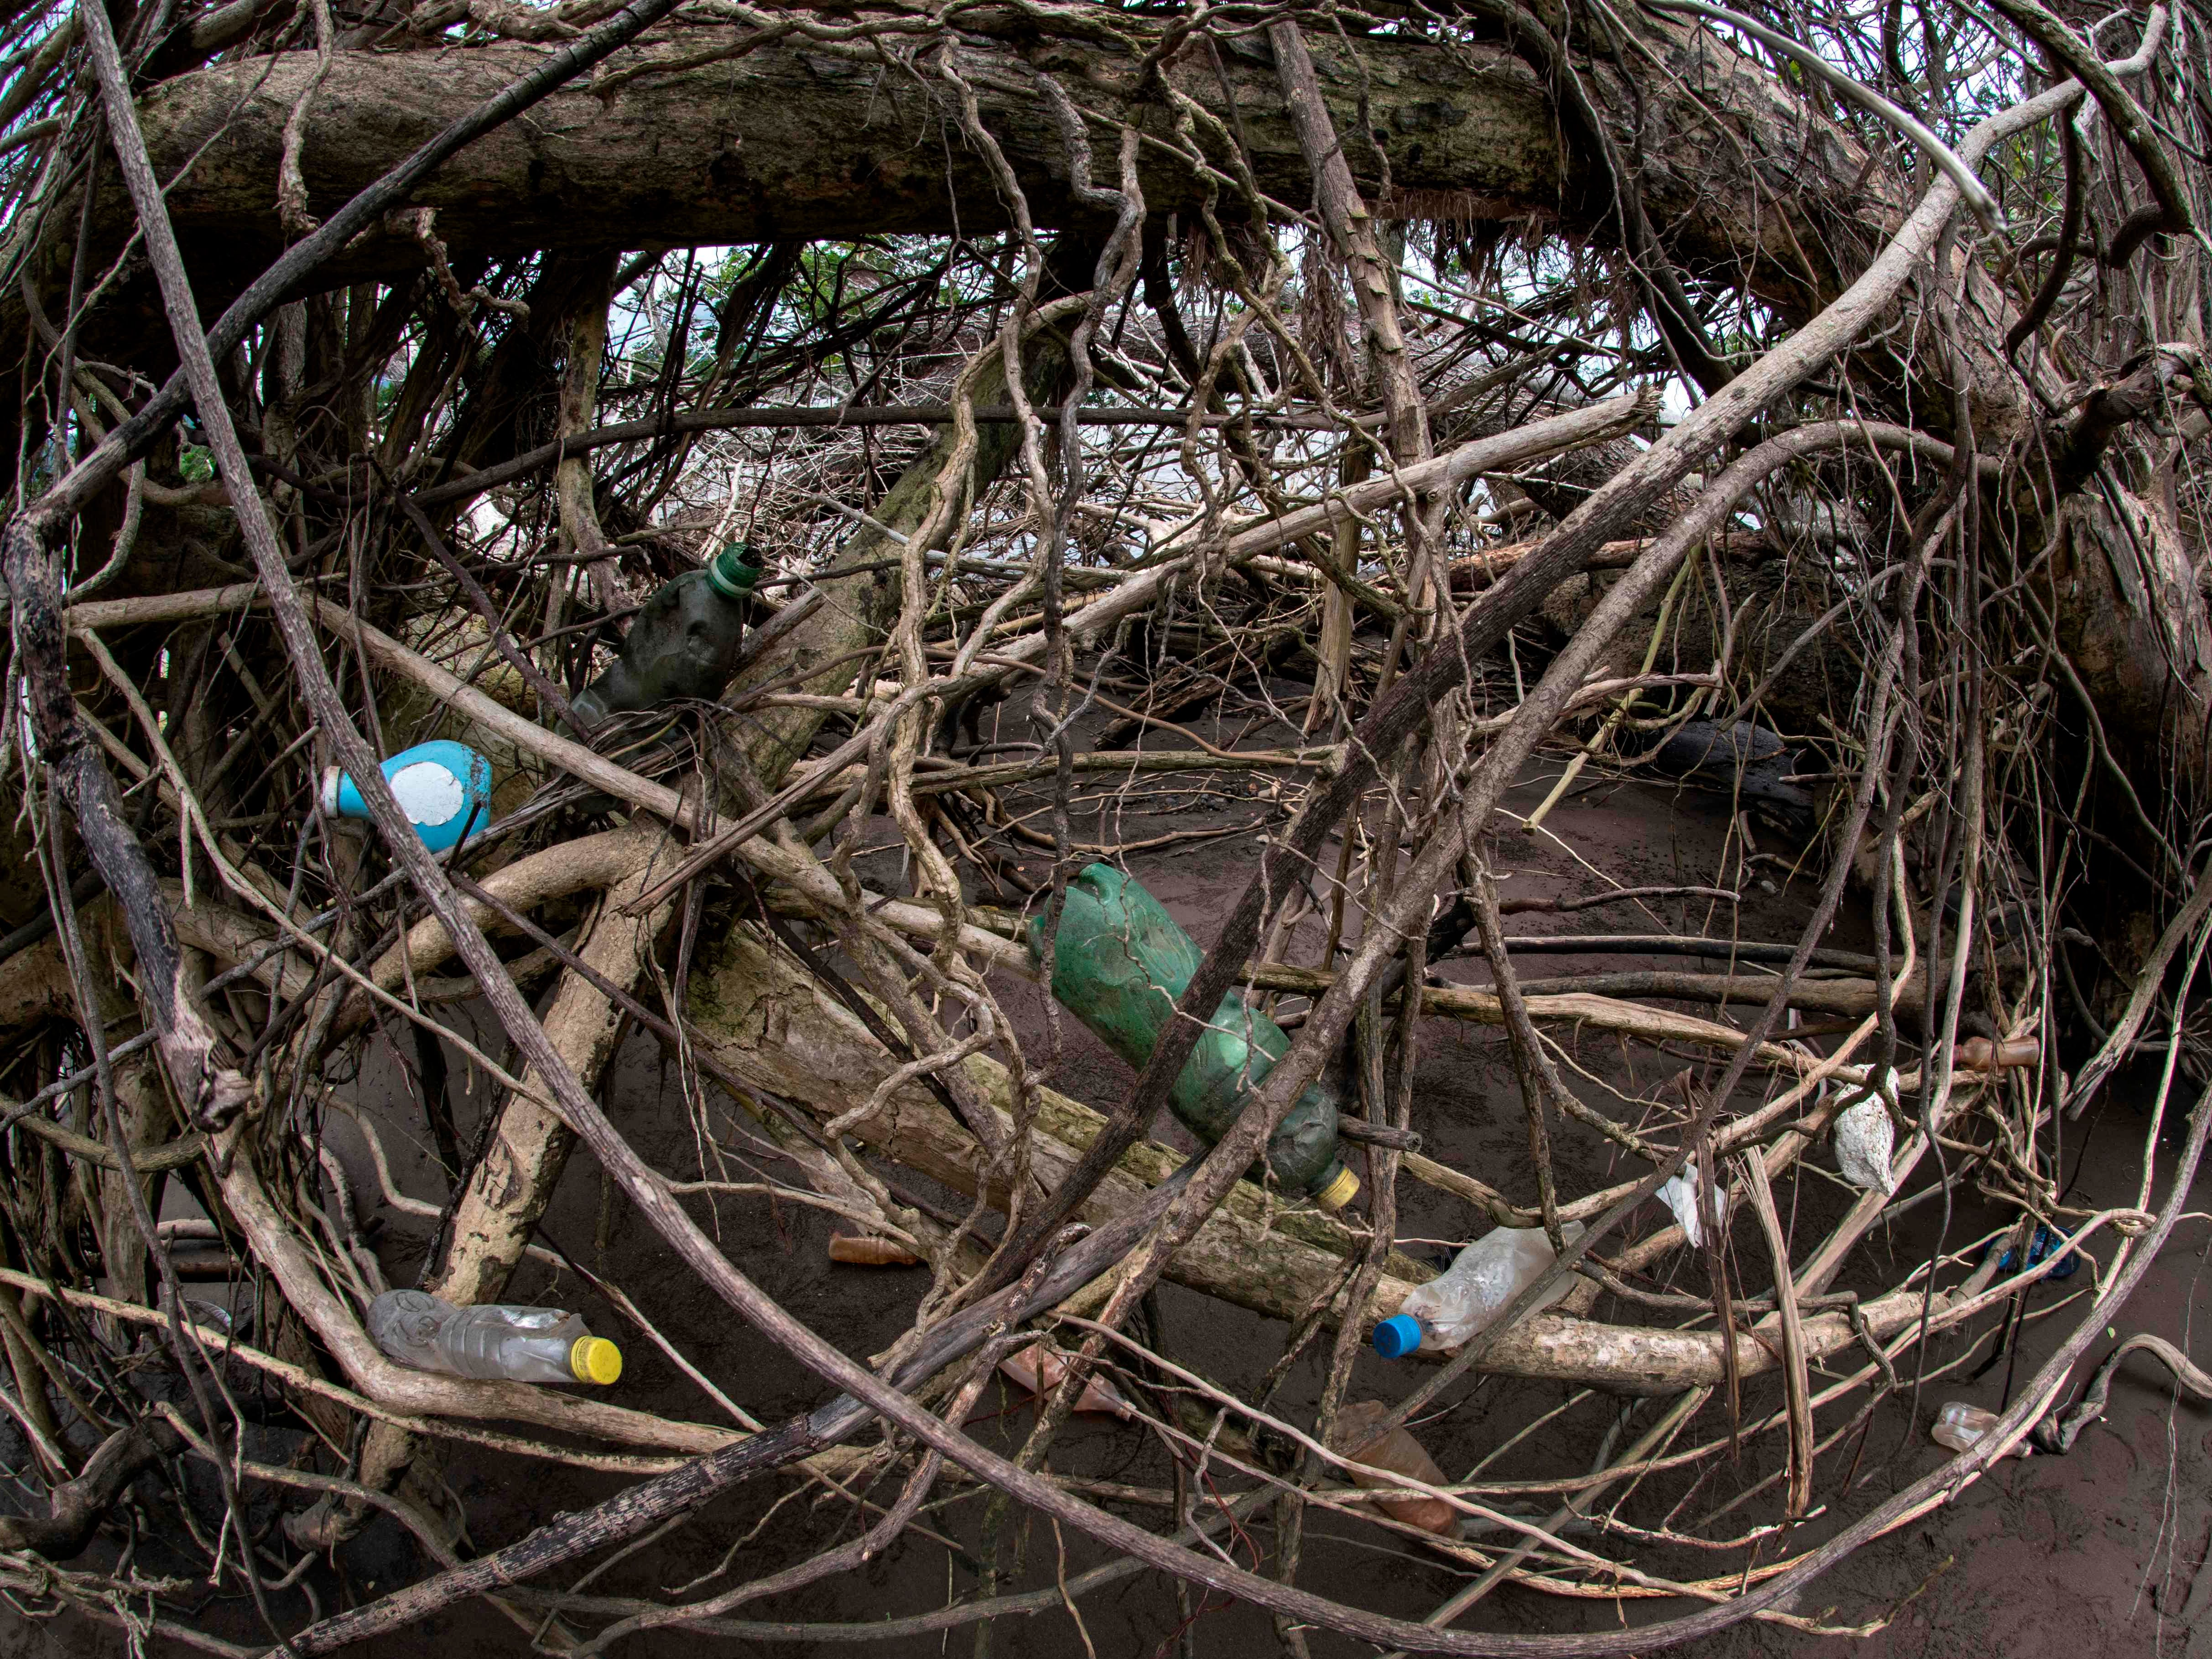 Plastic waste dots the mangroves at Guacalillo beach, Costa Rica, on Aug. 14, 2018. Costa Rica discards 564 tons of plastic per day, of which only 14 are recycled, according to the government. Since April 2018, a program seeks to stimulate recycling by giving value to waste through the exchange of it for a virtual currency that allows users to make purchases at stores linked with the initiative.